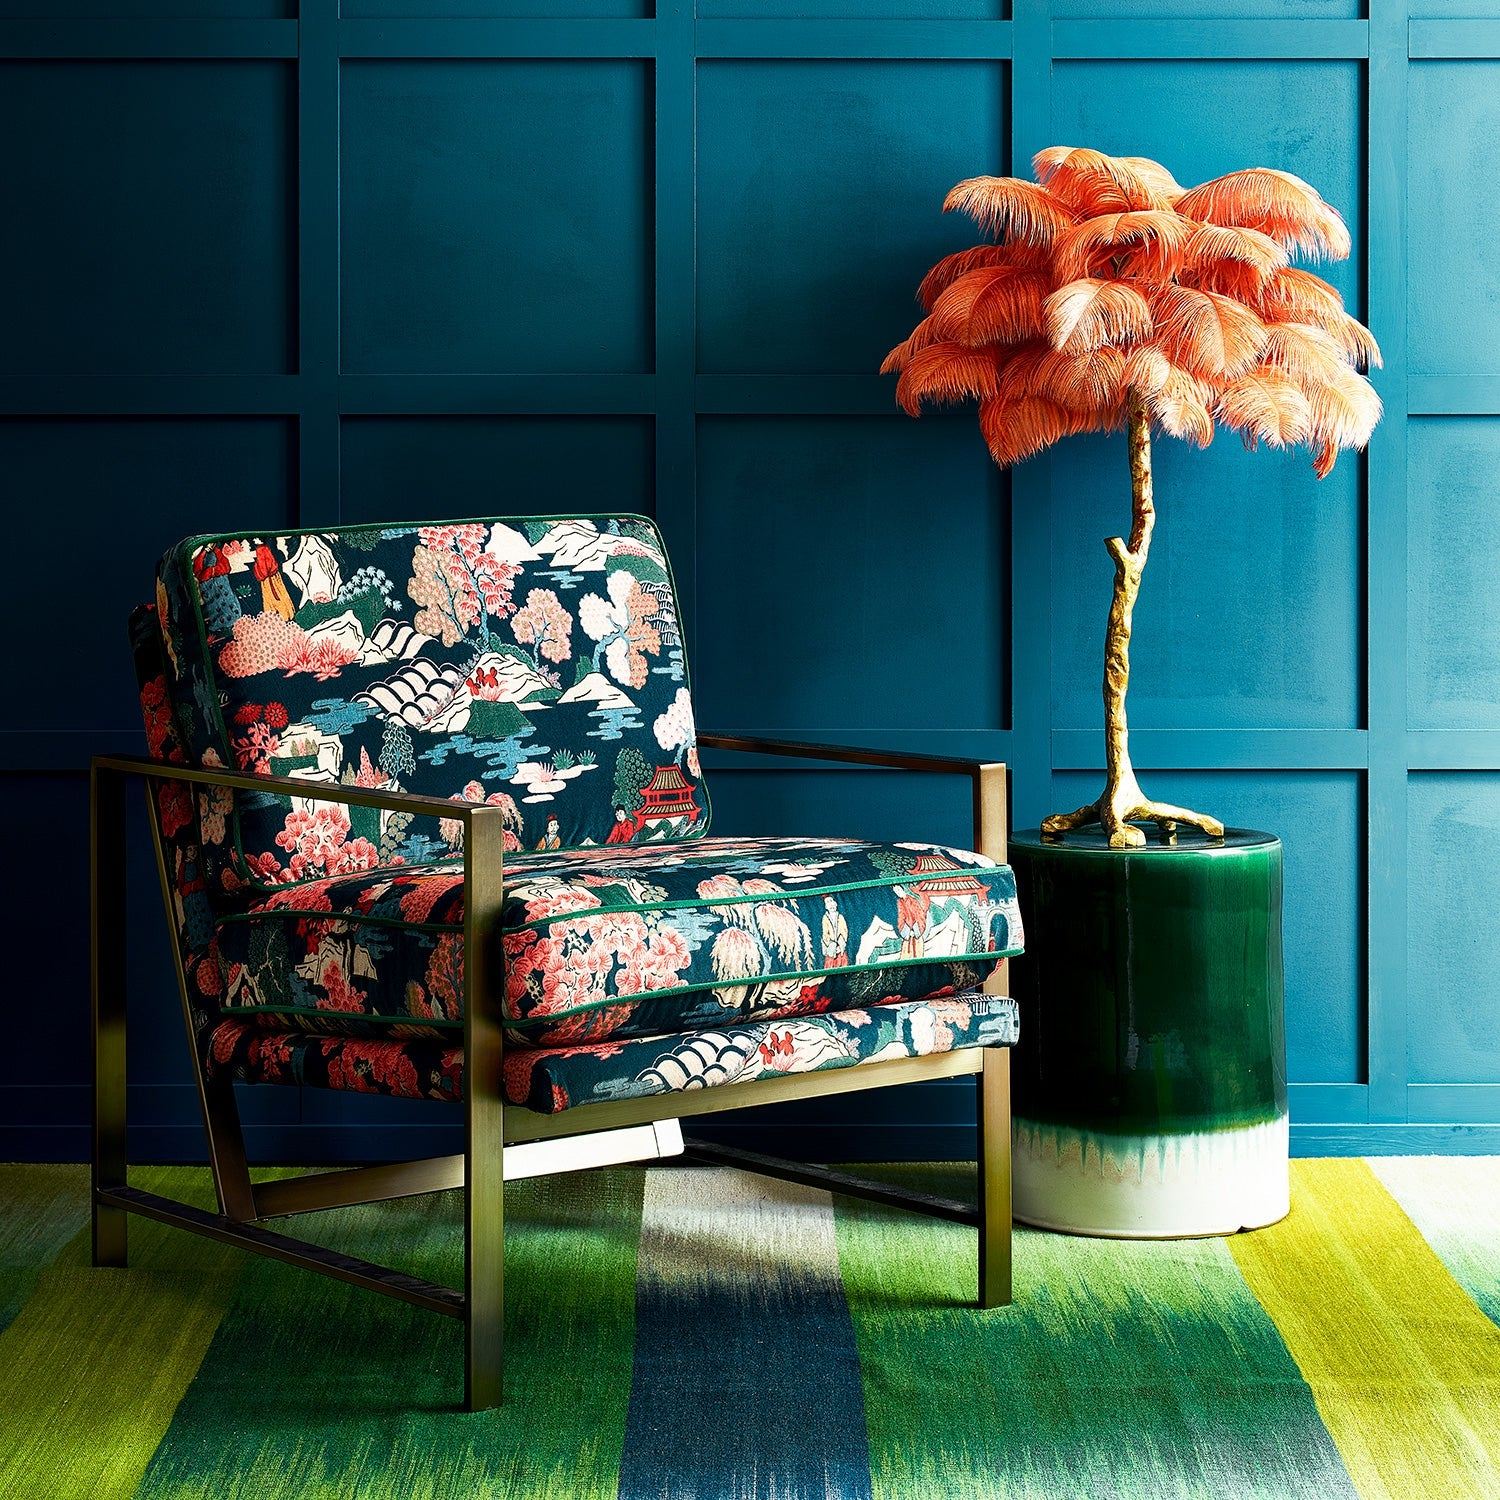 Velvet chair upholstered in a teal and pink velvet upholstery fabric with Japanese inspired design and stain resistant finish